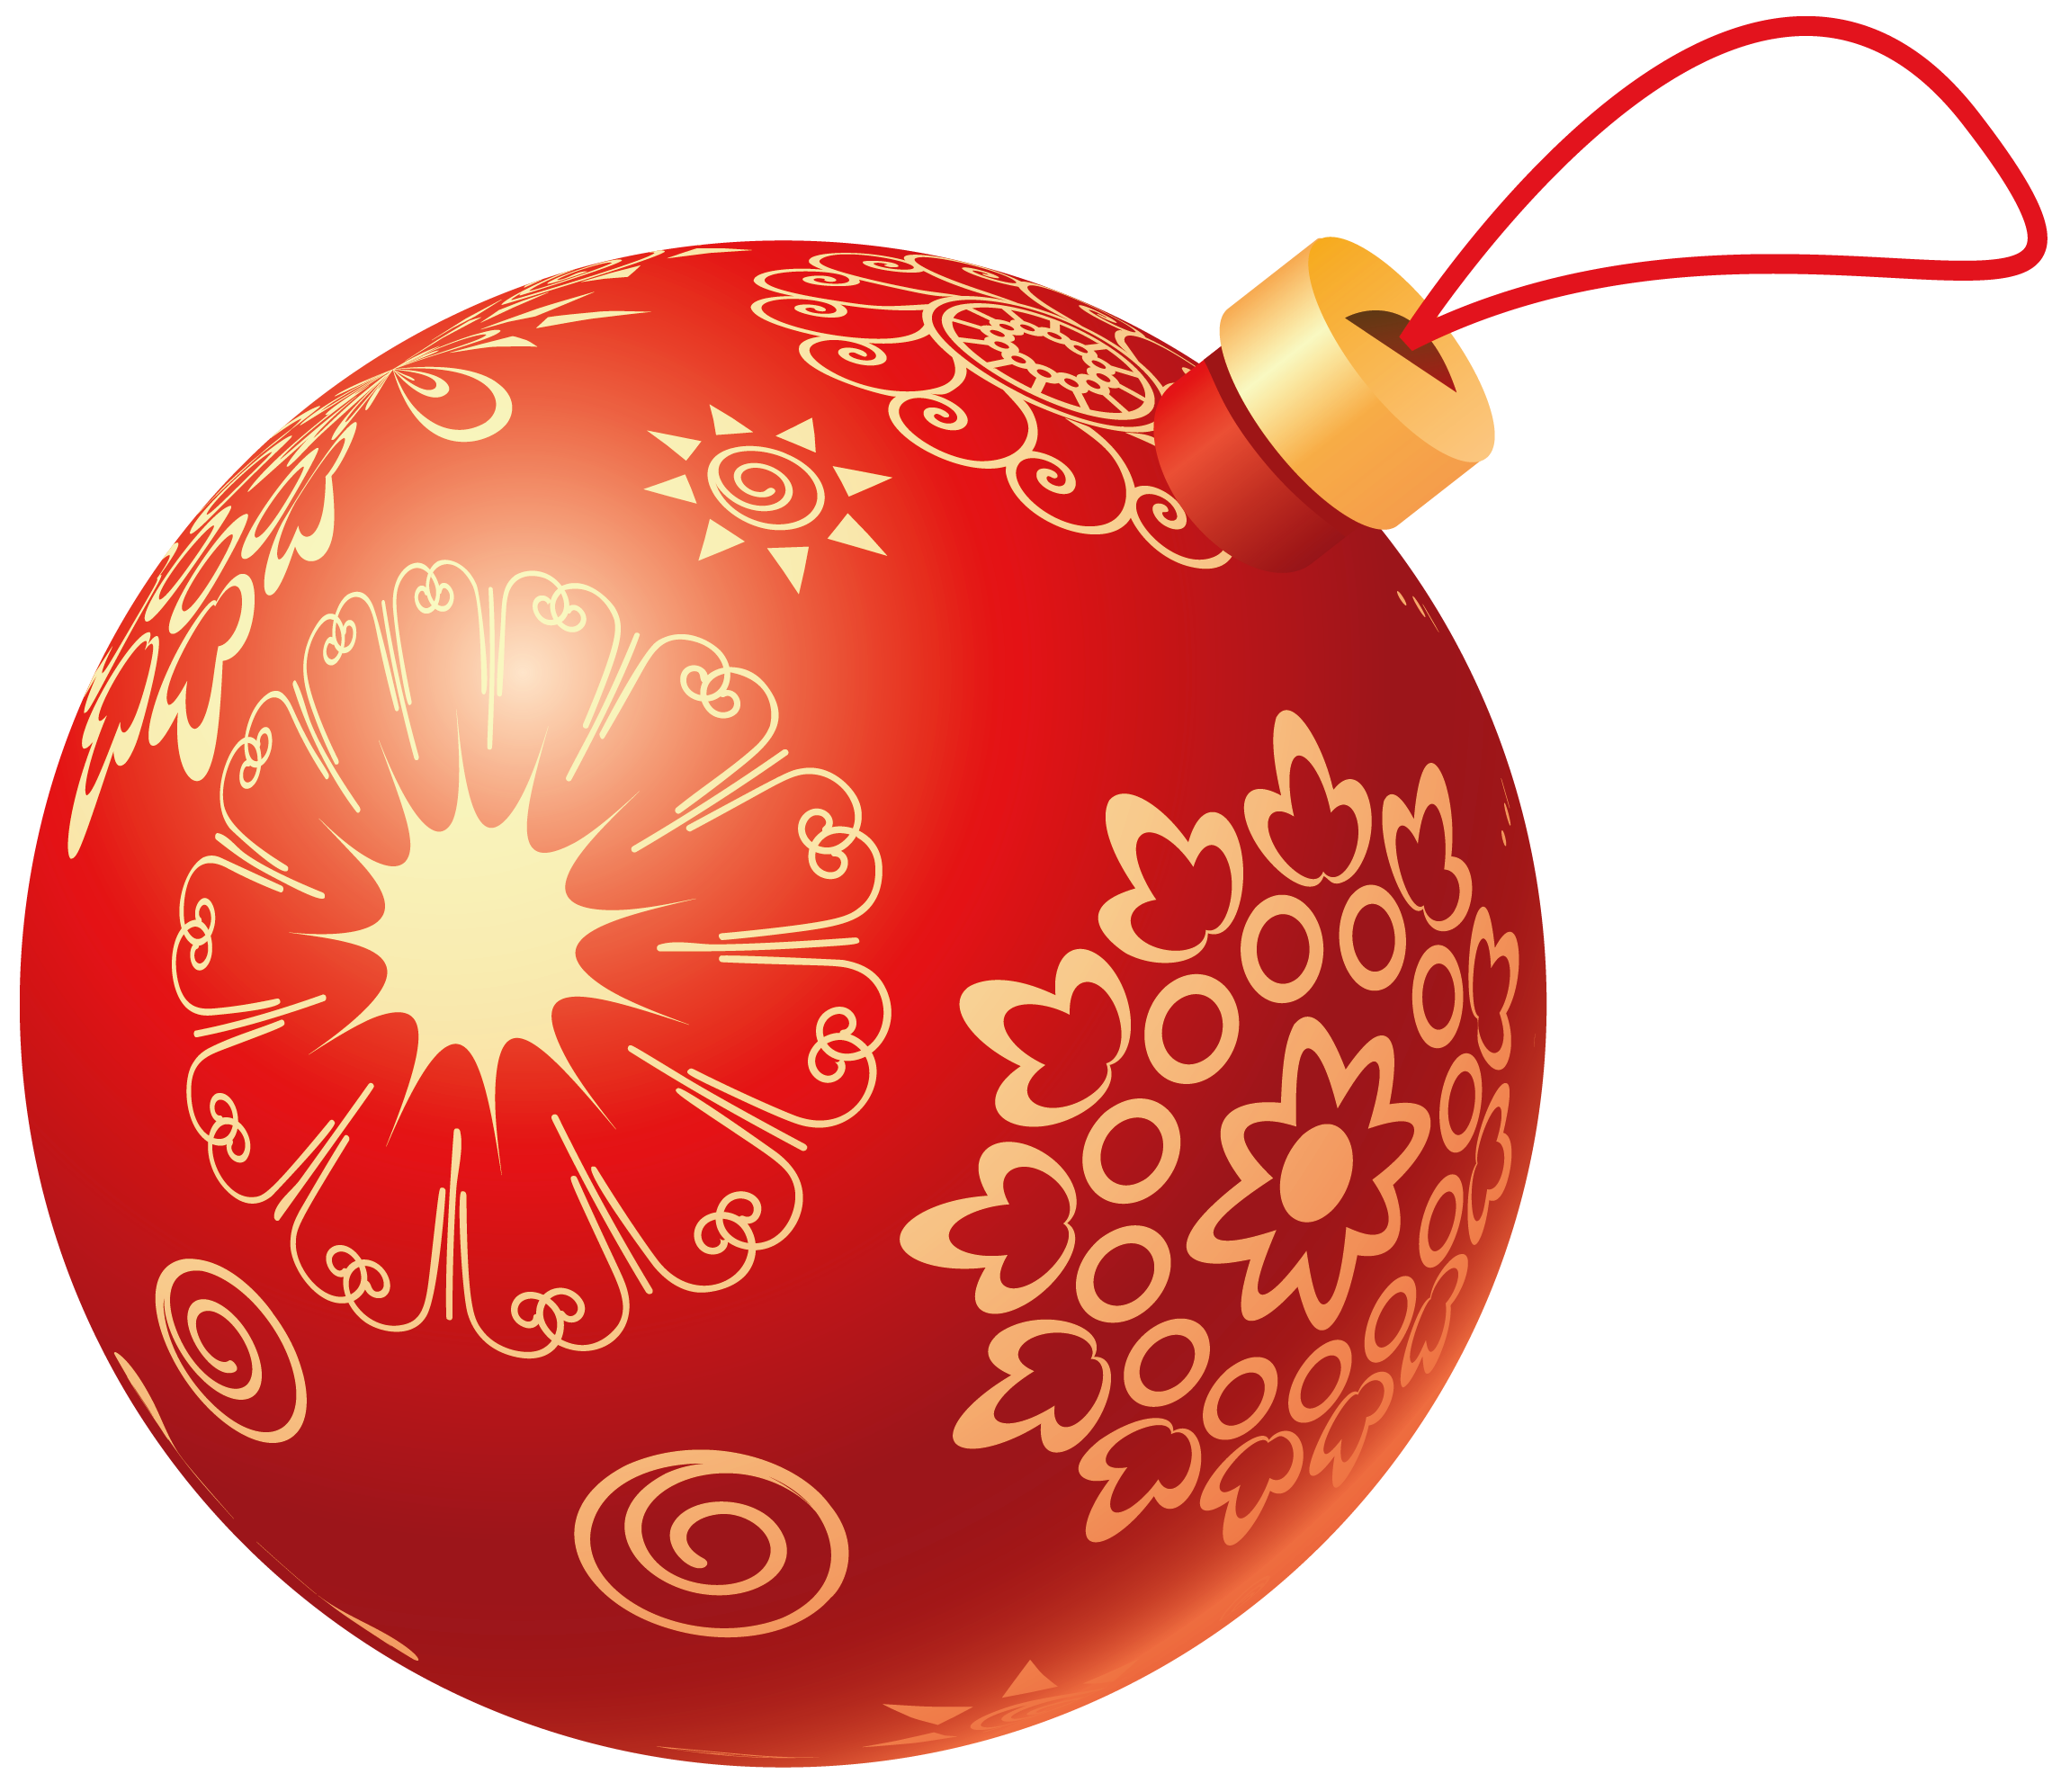 Christmas Bulb Png.Christmas Png Images Download 707109 Png Images Pngio